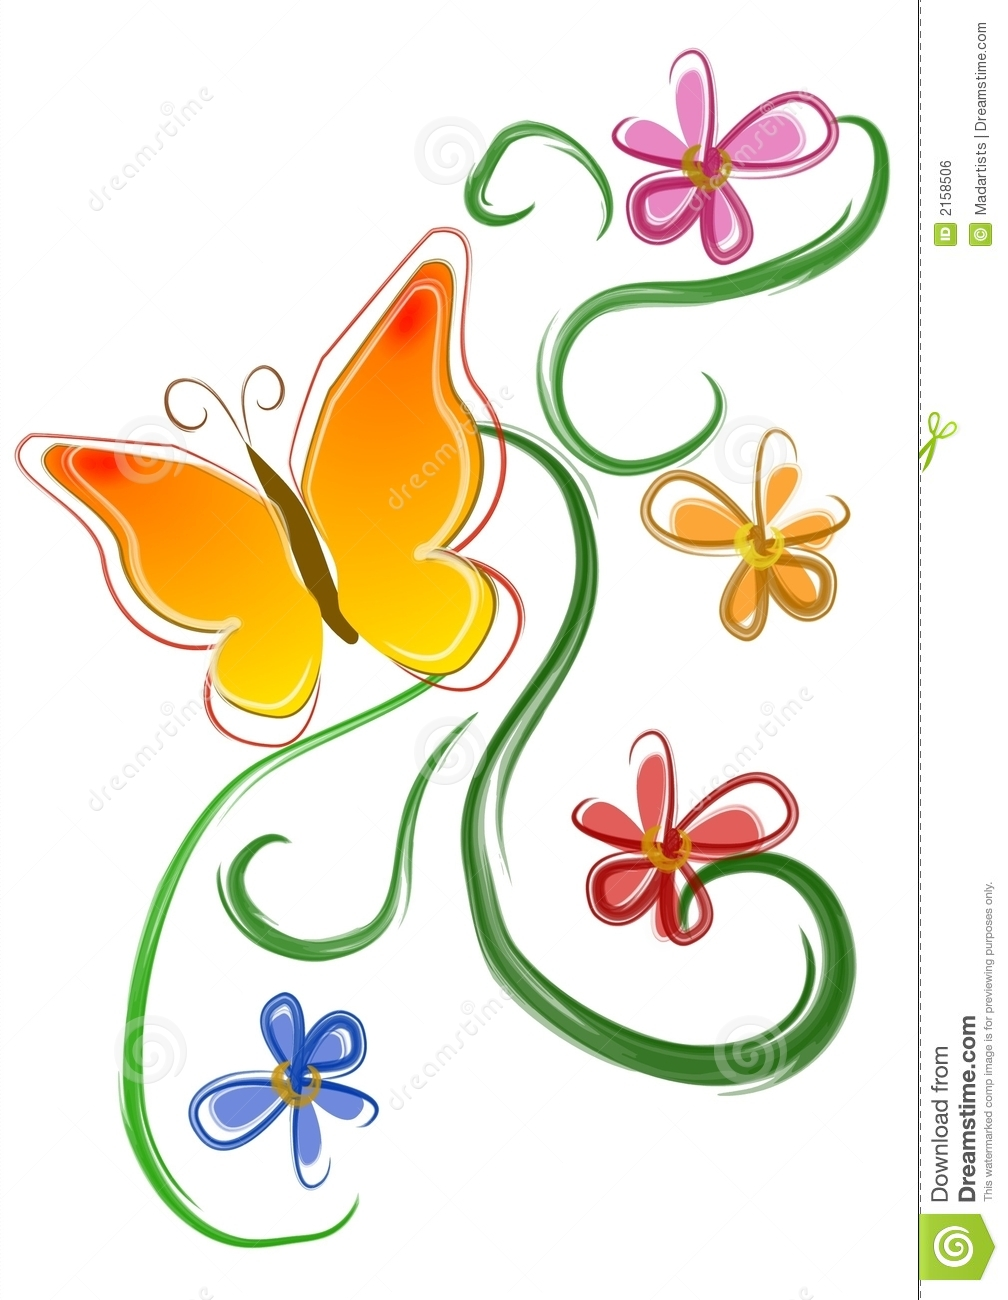 Butterfly and flowers clipart vector transparent Free butterfly and flower clipart - ClipartFest vector transparent